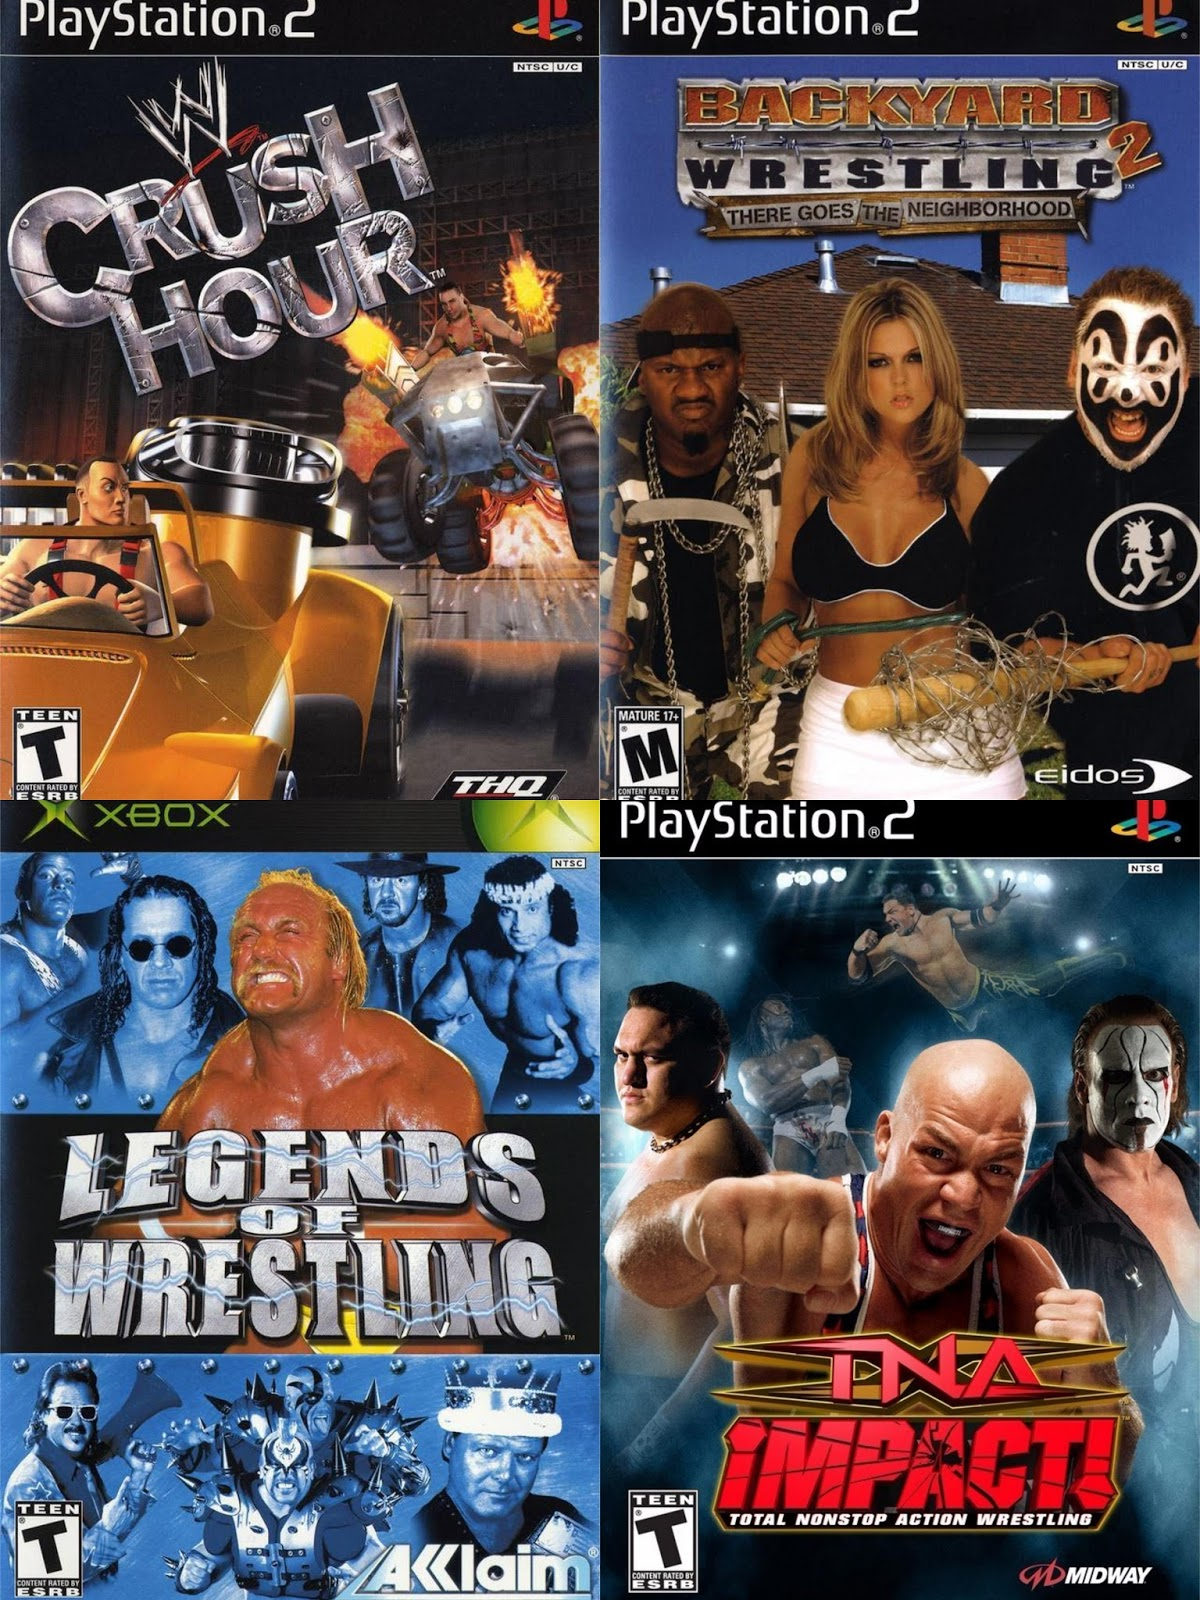 Backyard Wrestling 2 There Goes The Neighborhood Video Game 2004 - Backyard Wrestling Icp Backyard Wrestling 2 First Impressions